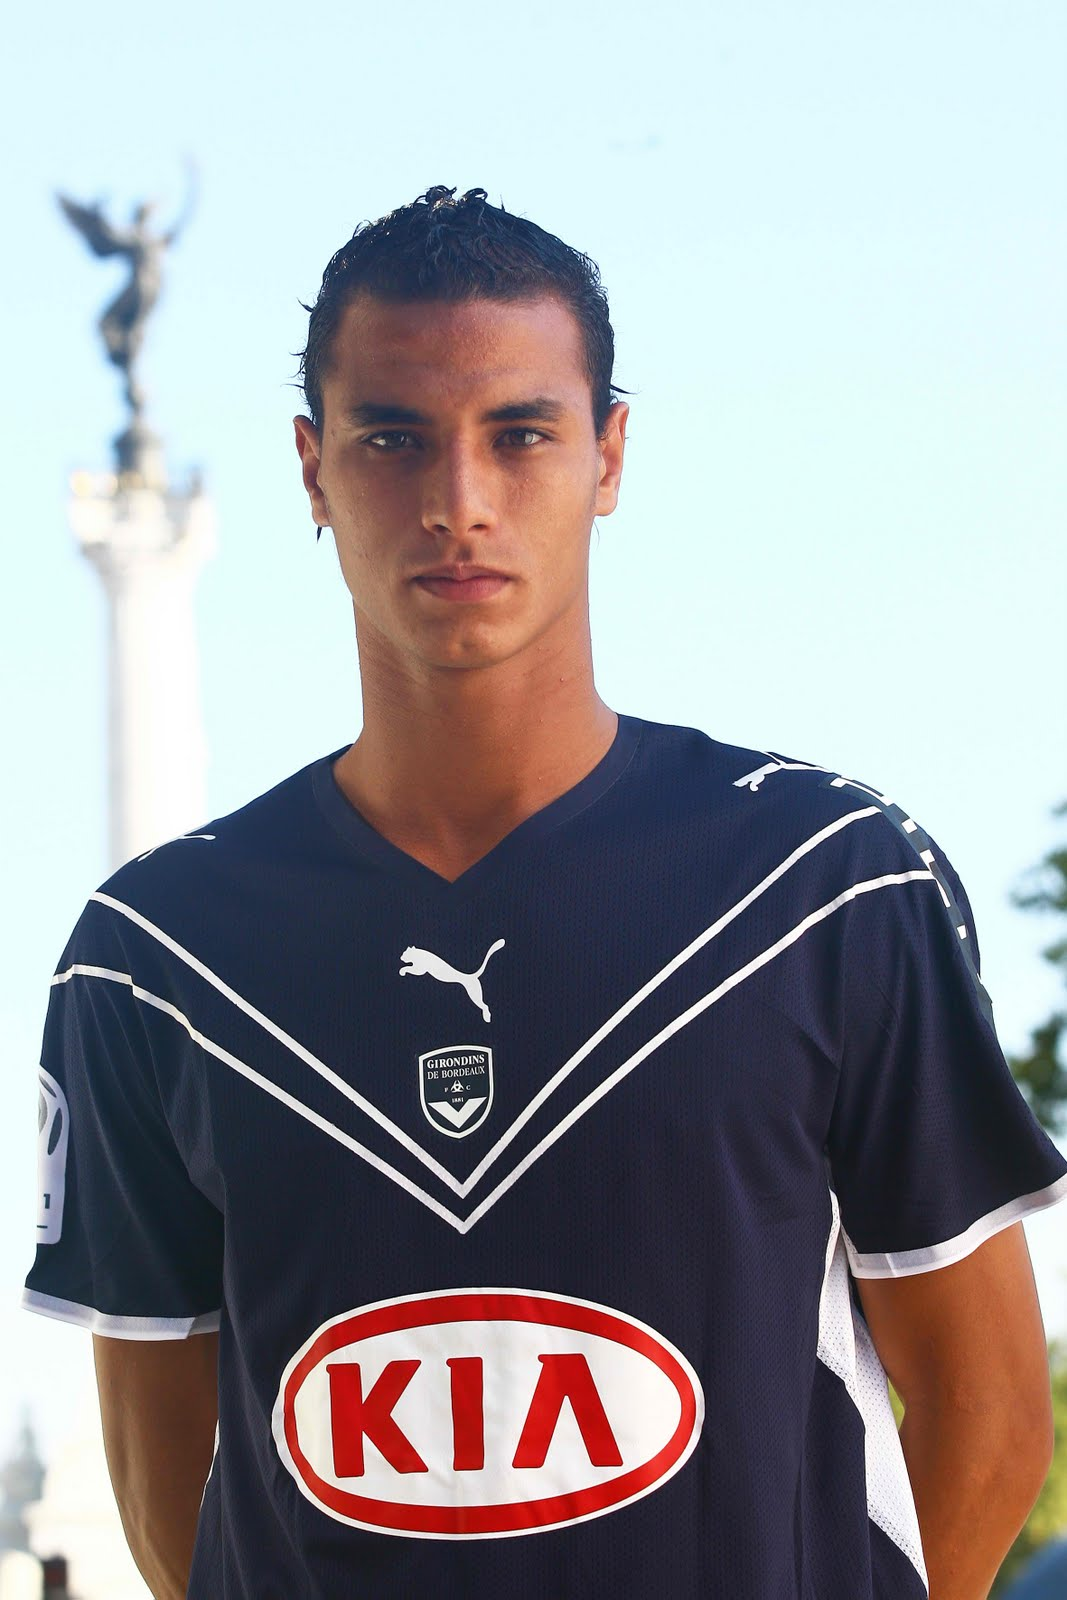 The Best Footballers: Marouane Chamakh the soccer player ...